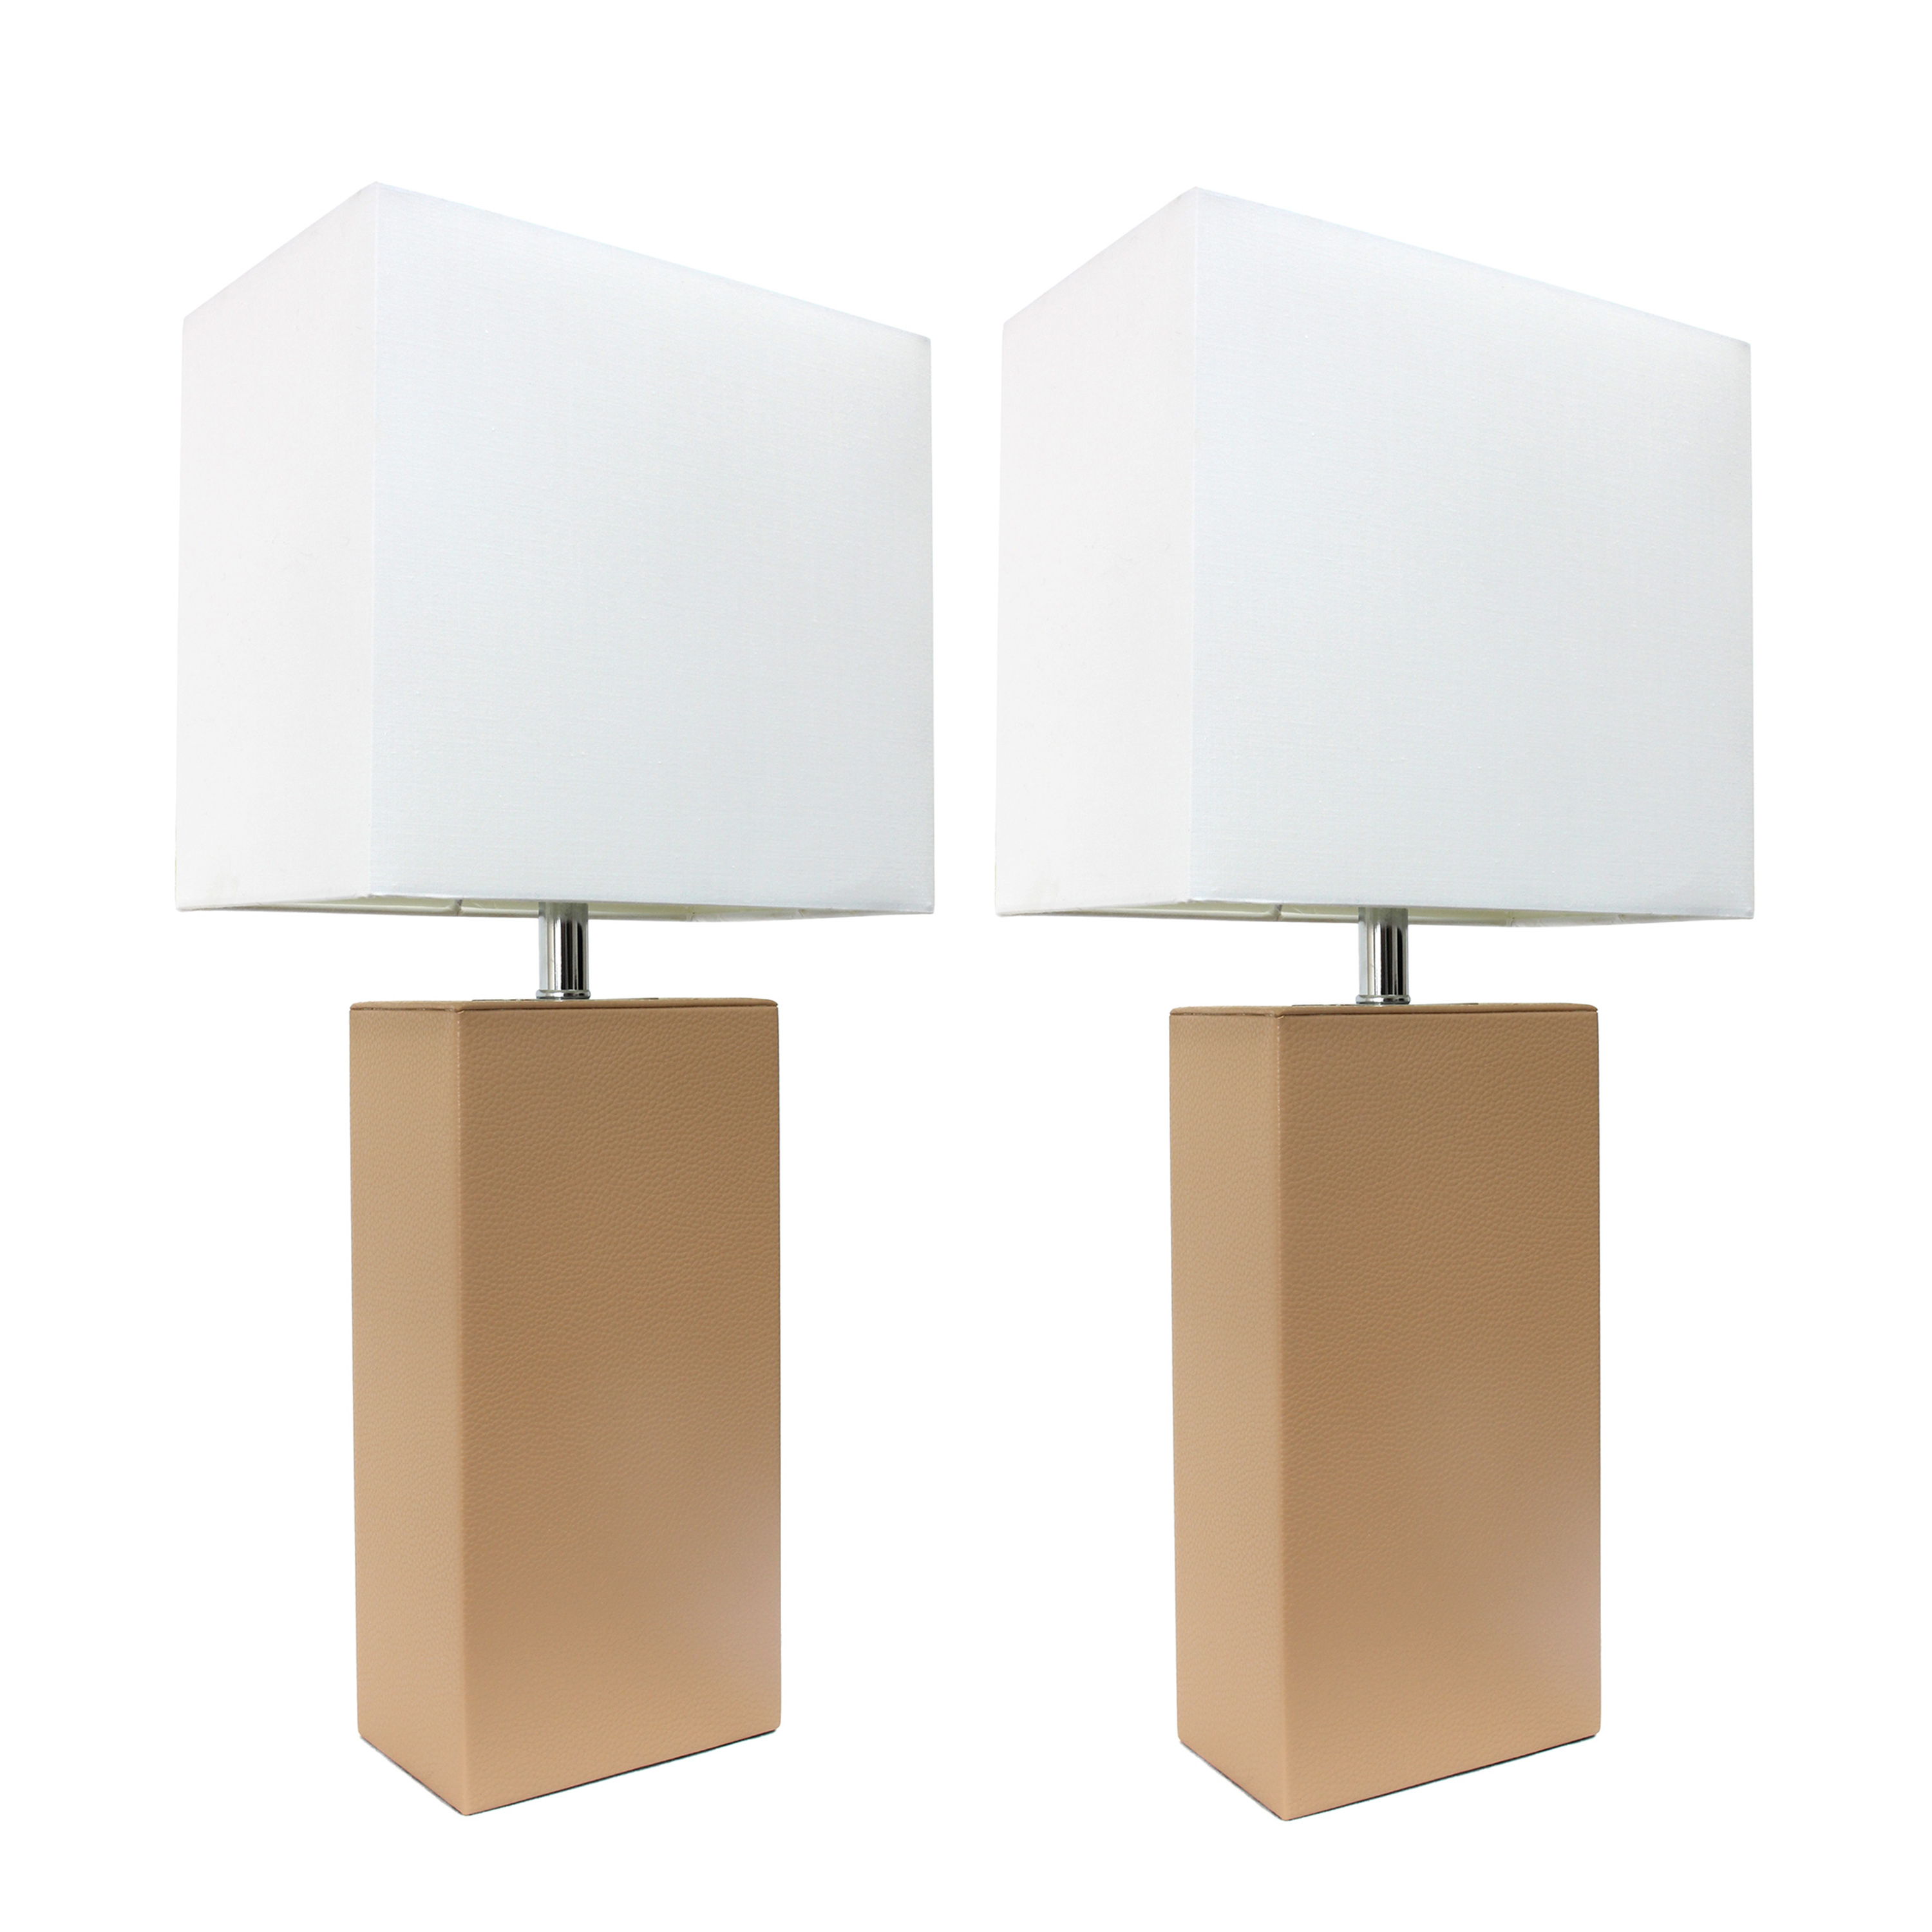 Elegant Designs 2 Pack Modern Leather Table Lamps with White Fabric Shades, Beige